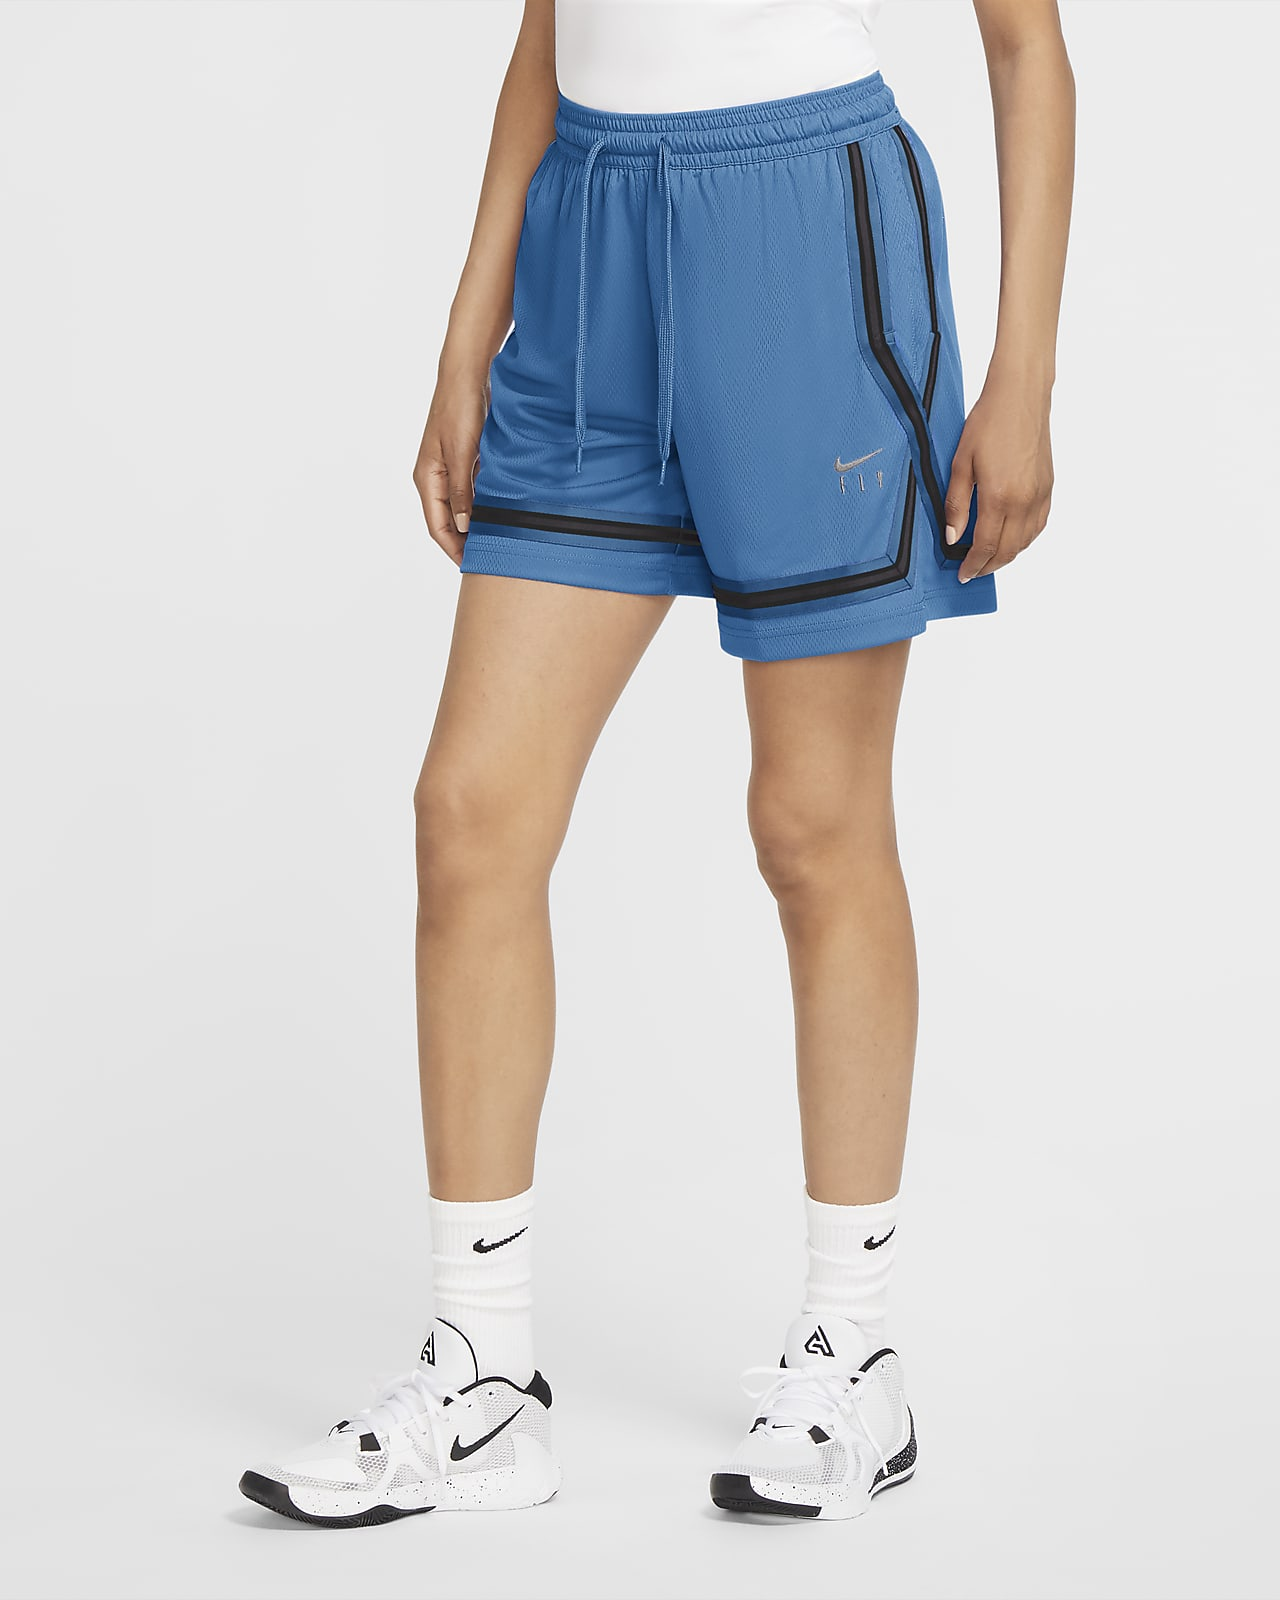 Nike Dri-FIT Swoosh Fly Women's Basketball Shorts